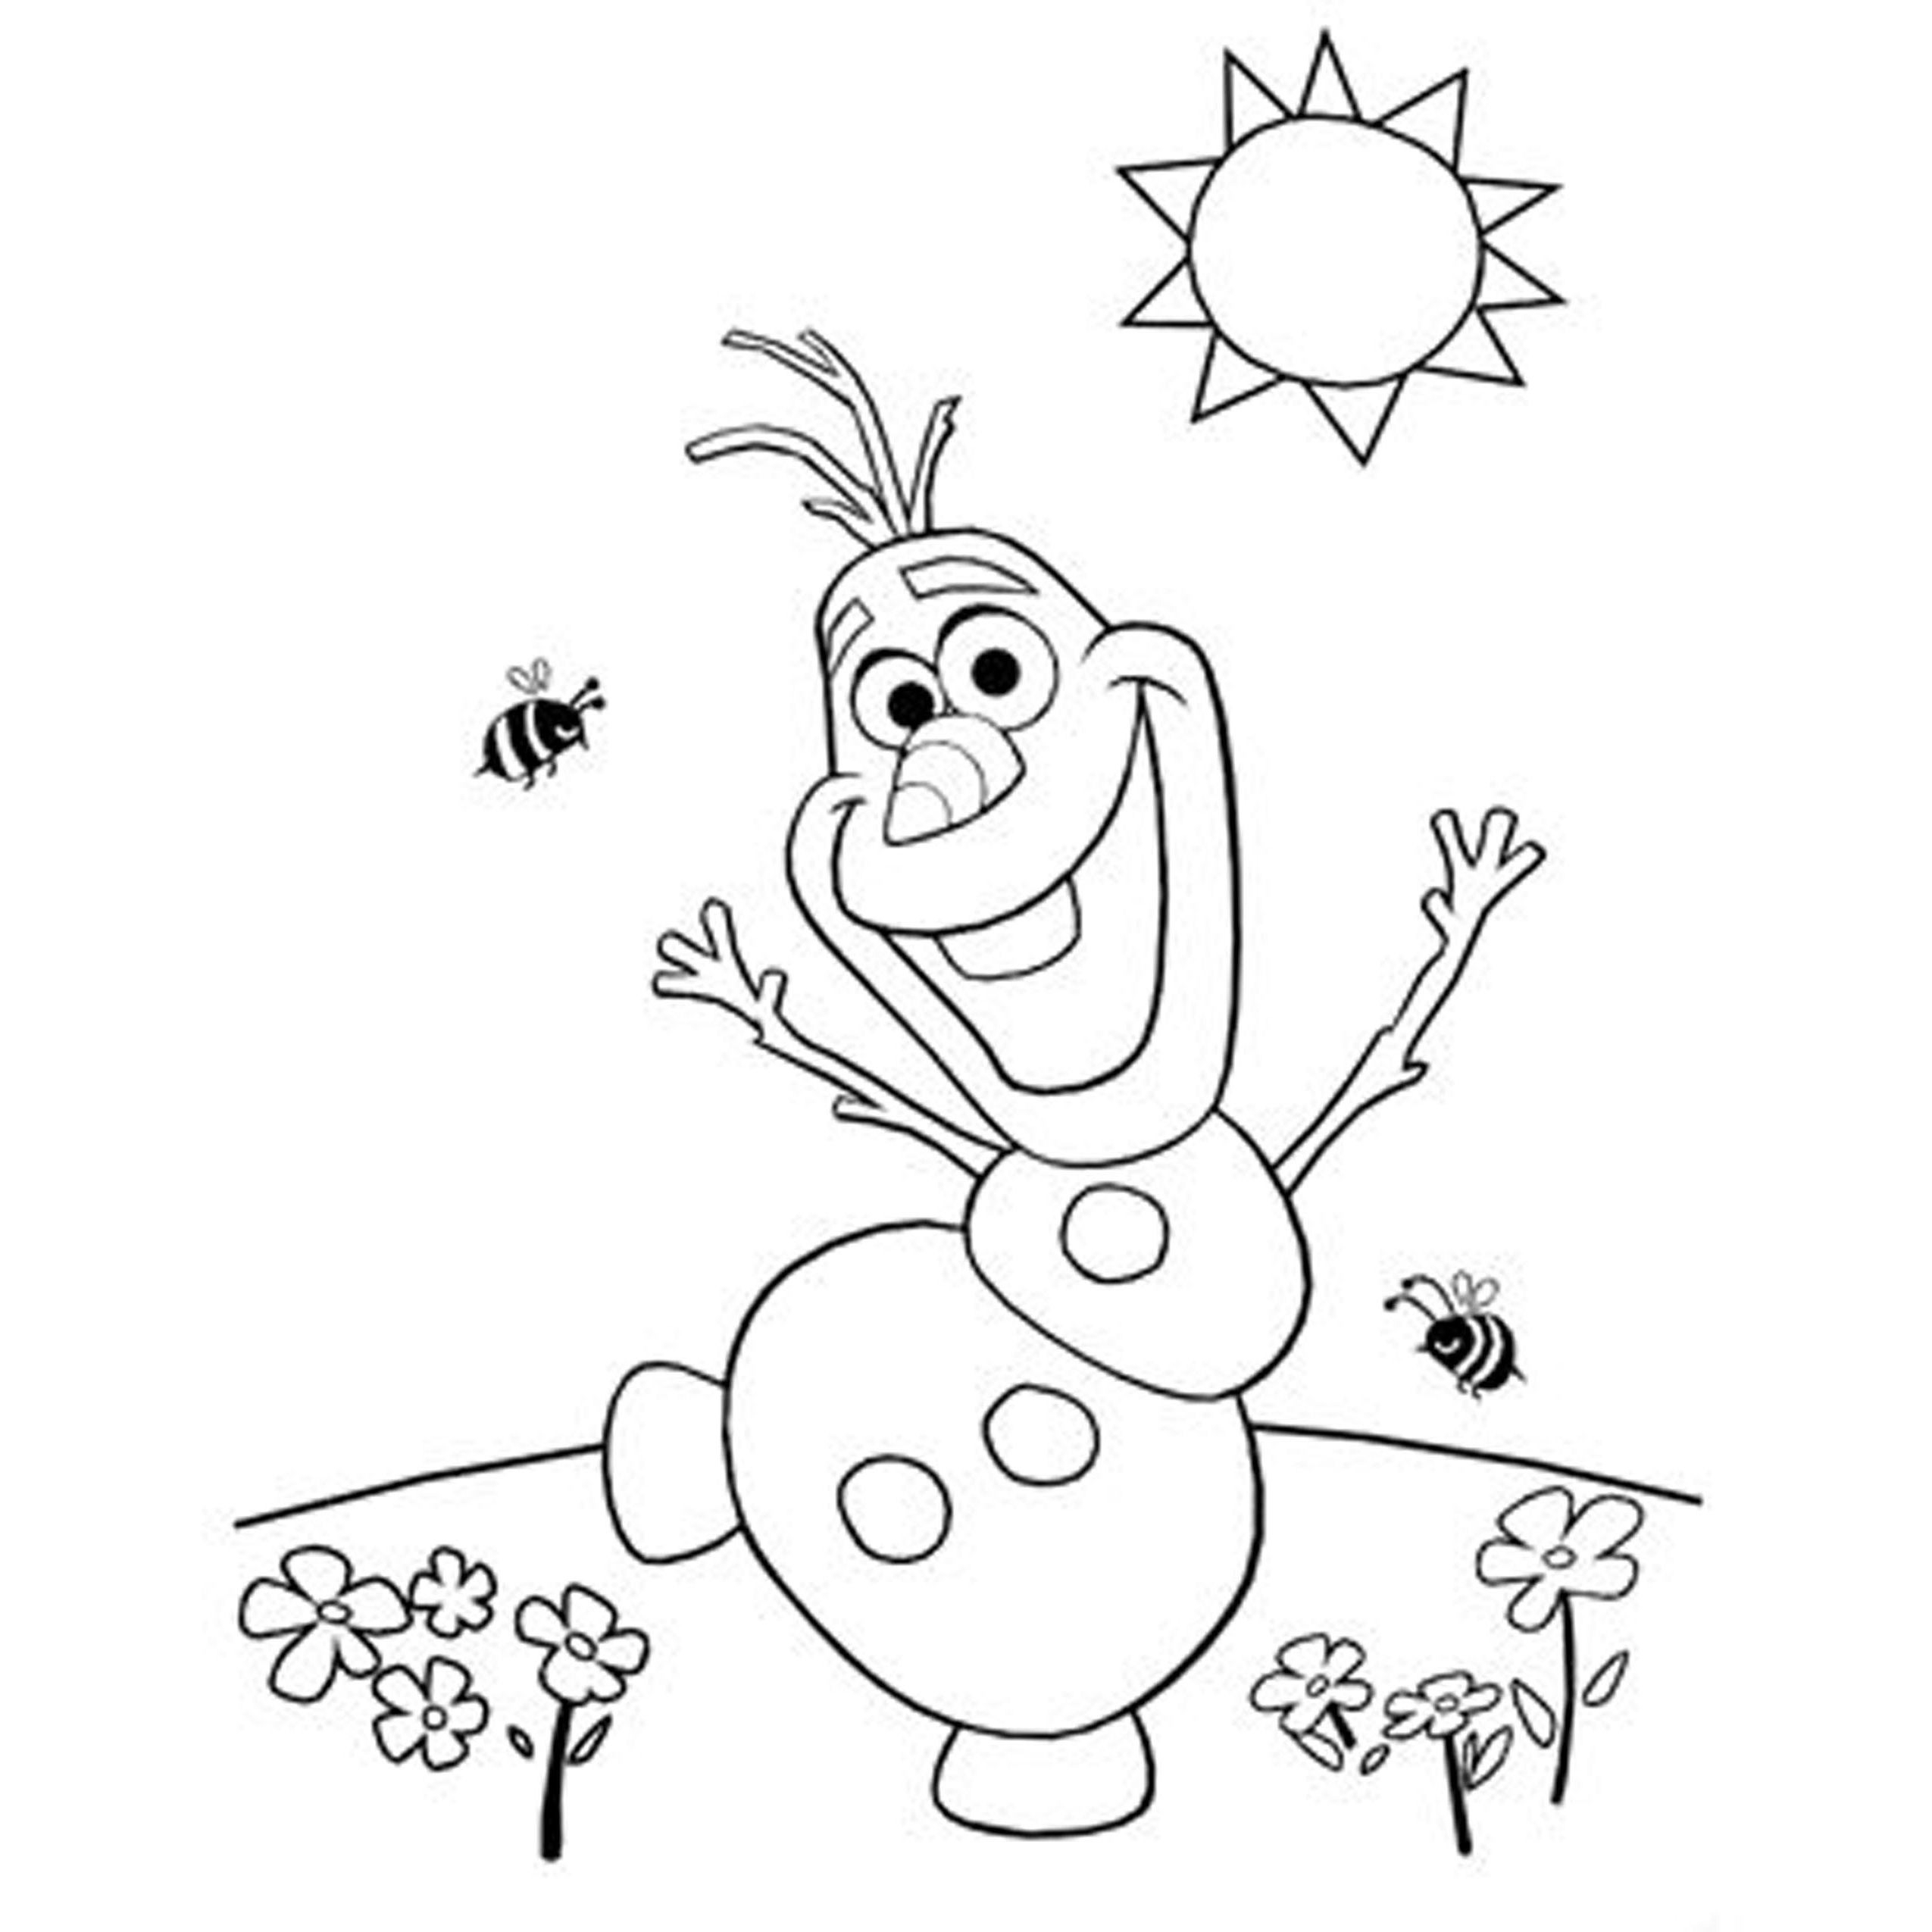 free printable abstract coloring pages frozen olaf | Coloring Pages For Girls Frozen at GetDrawings.com | Free ...